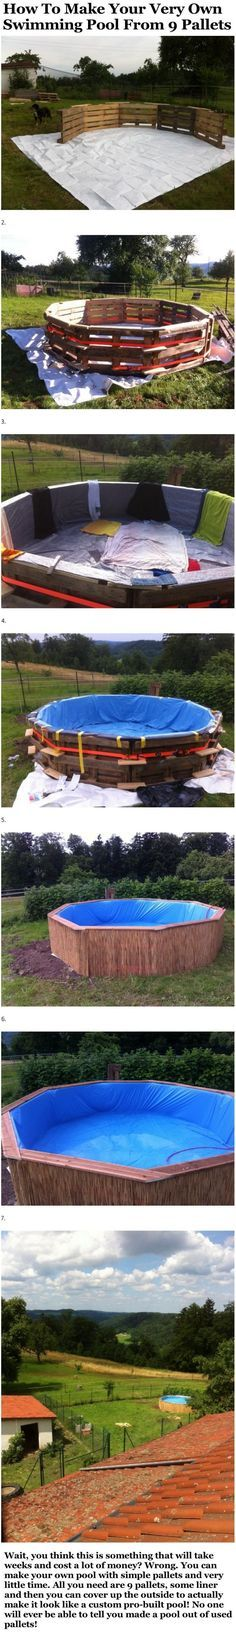 1000 ideas about pallet pool on pinterest pool steps - How to make a swimming pool in your backyard ...